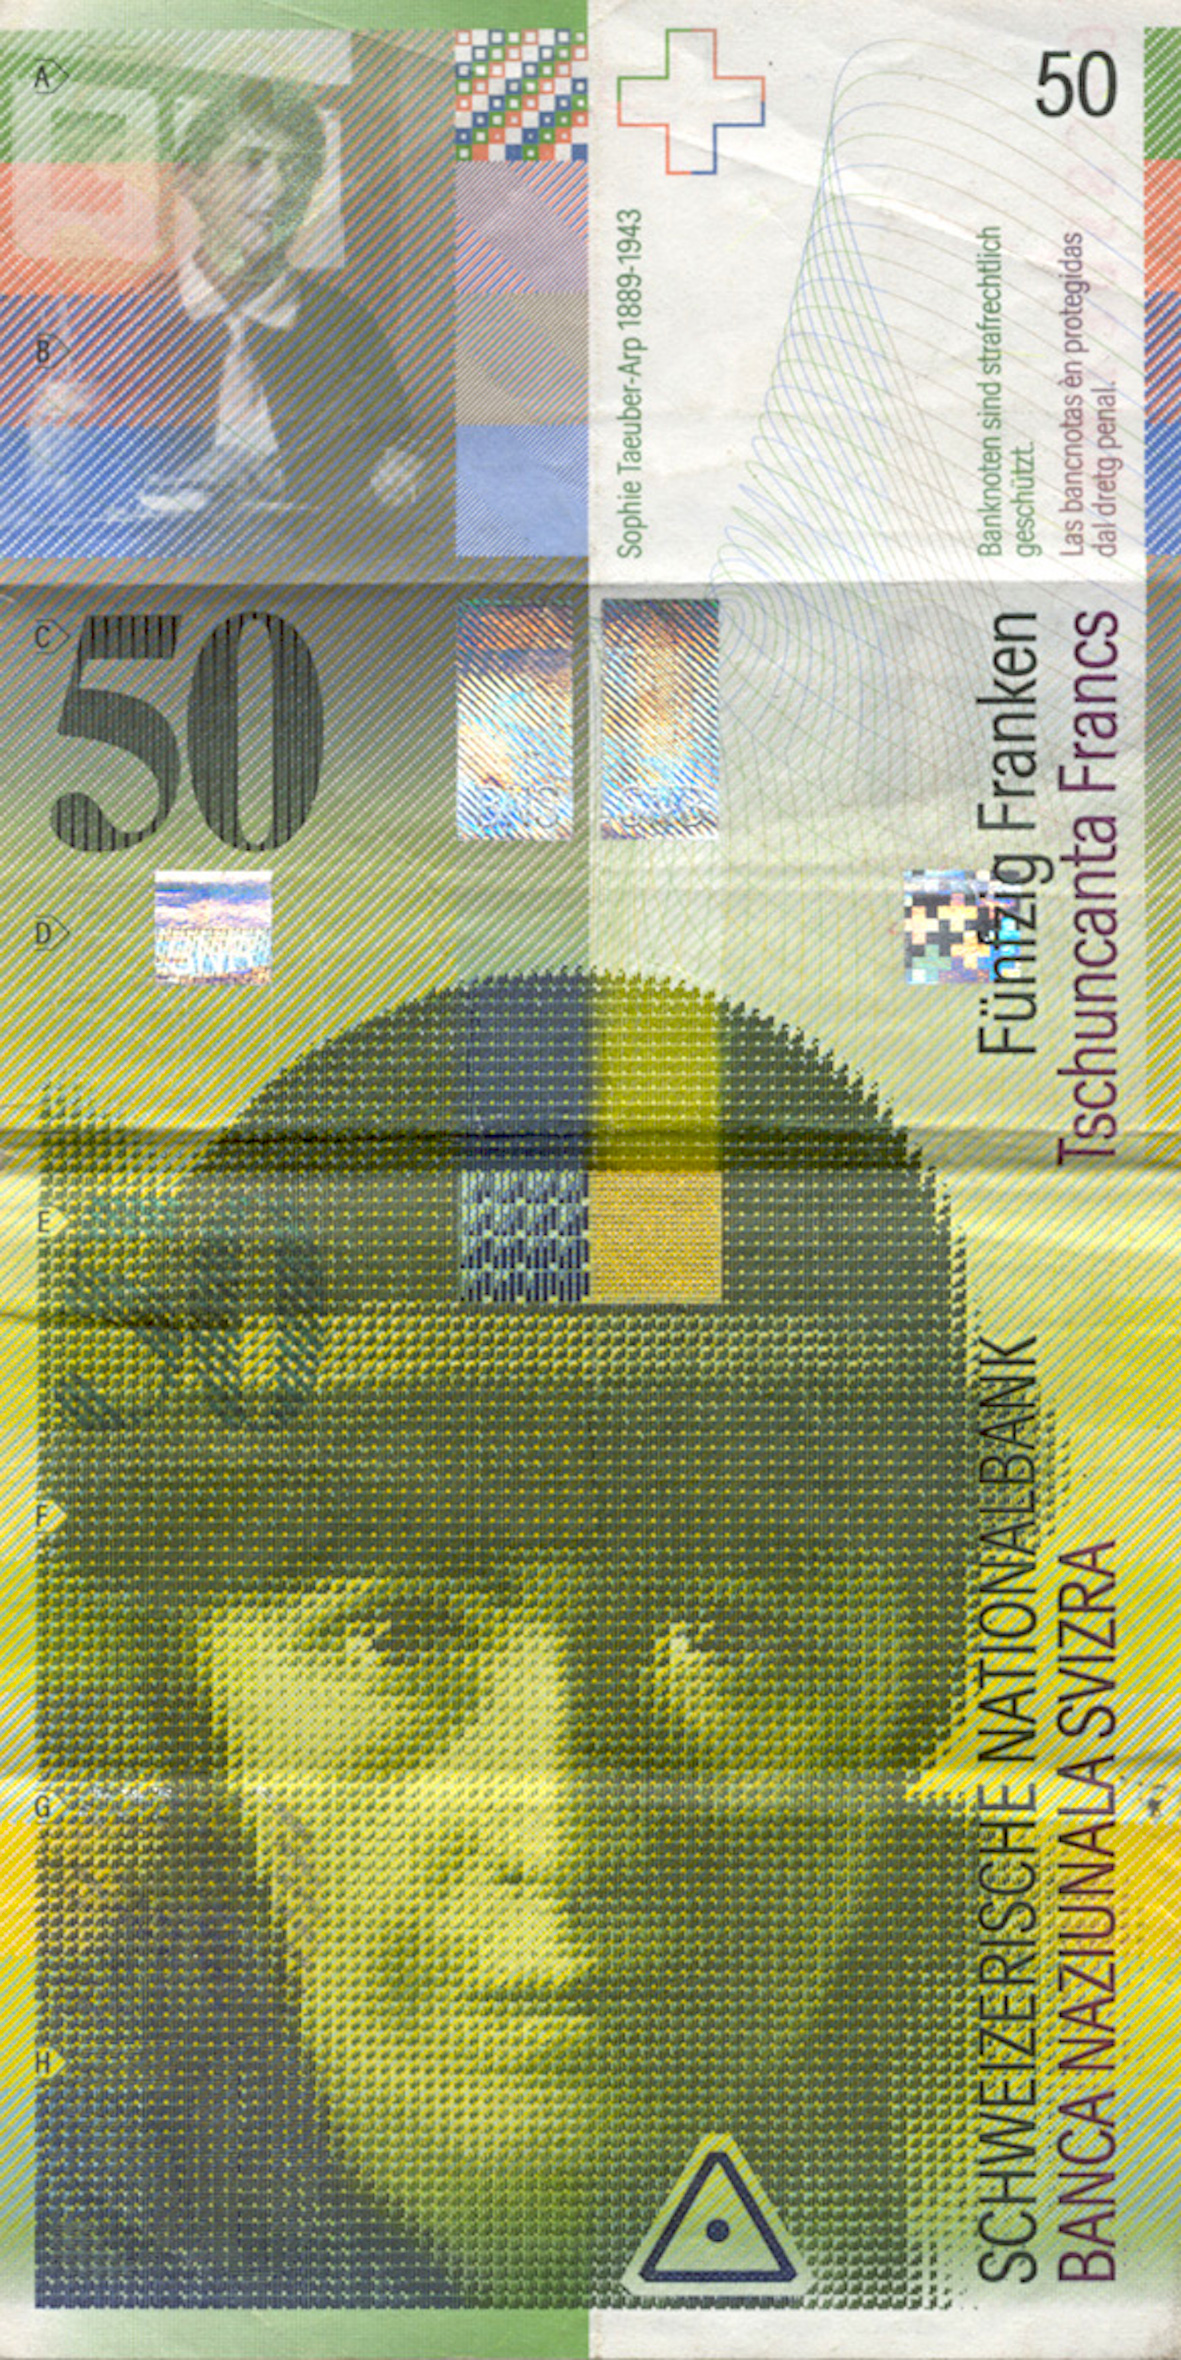 Swiss Confederation, 50 Franks 1980, 8th banknote series, in circulation since 1995 (obverse)